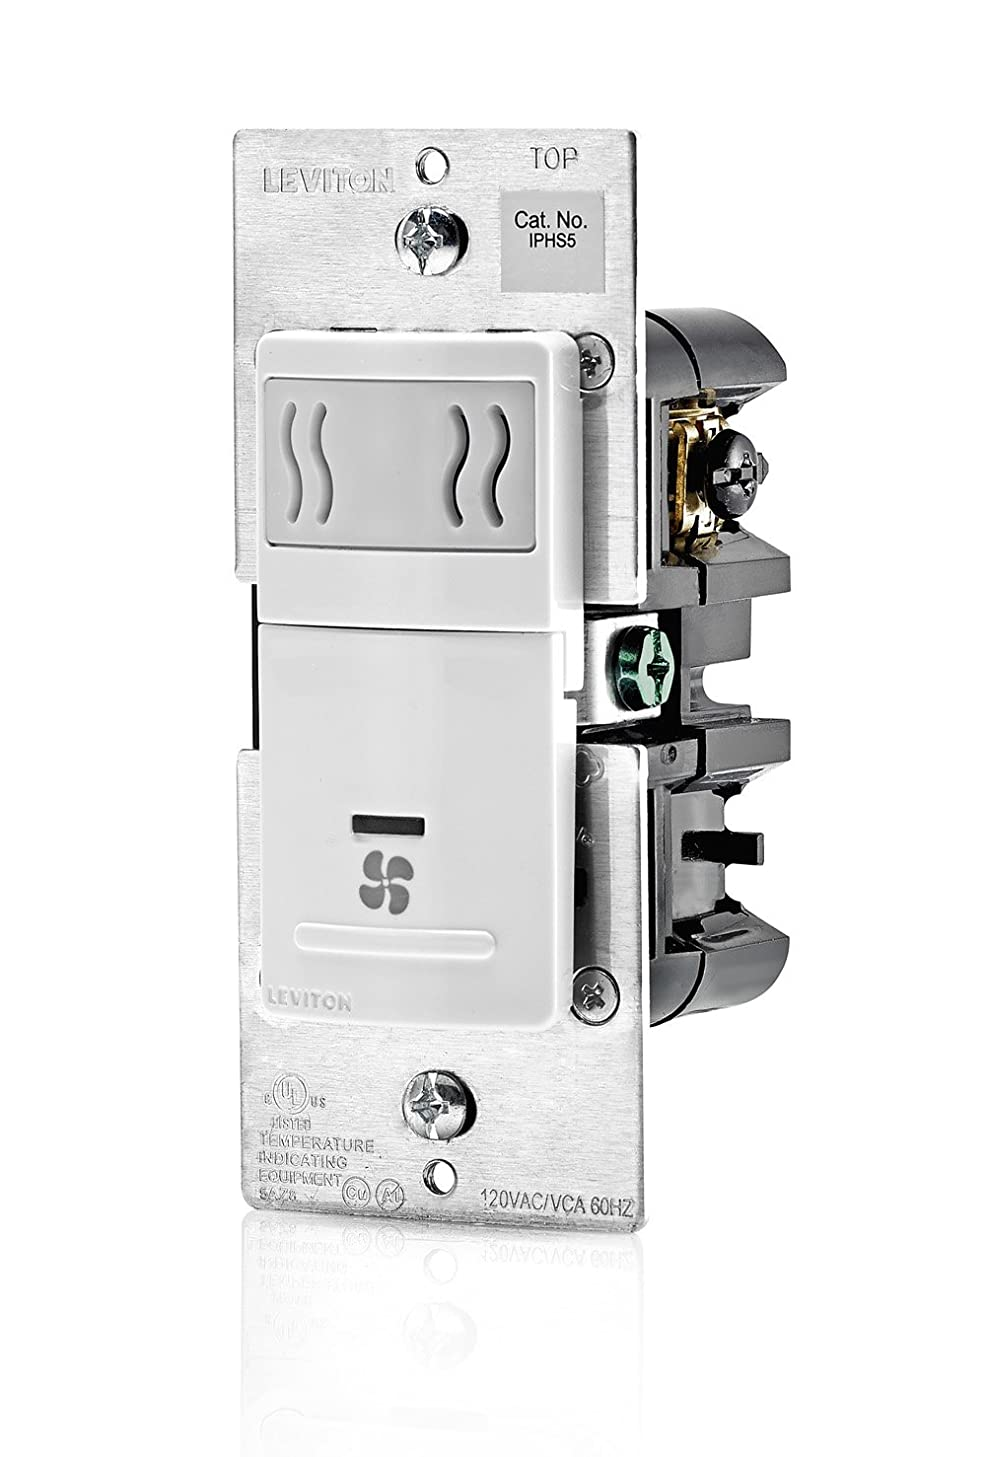 Leviton IPHS5-1LW Decora In-Wall Humidity Sensor & Fan Control , 3A, Single Pole, White zfbwqrdst